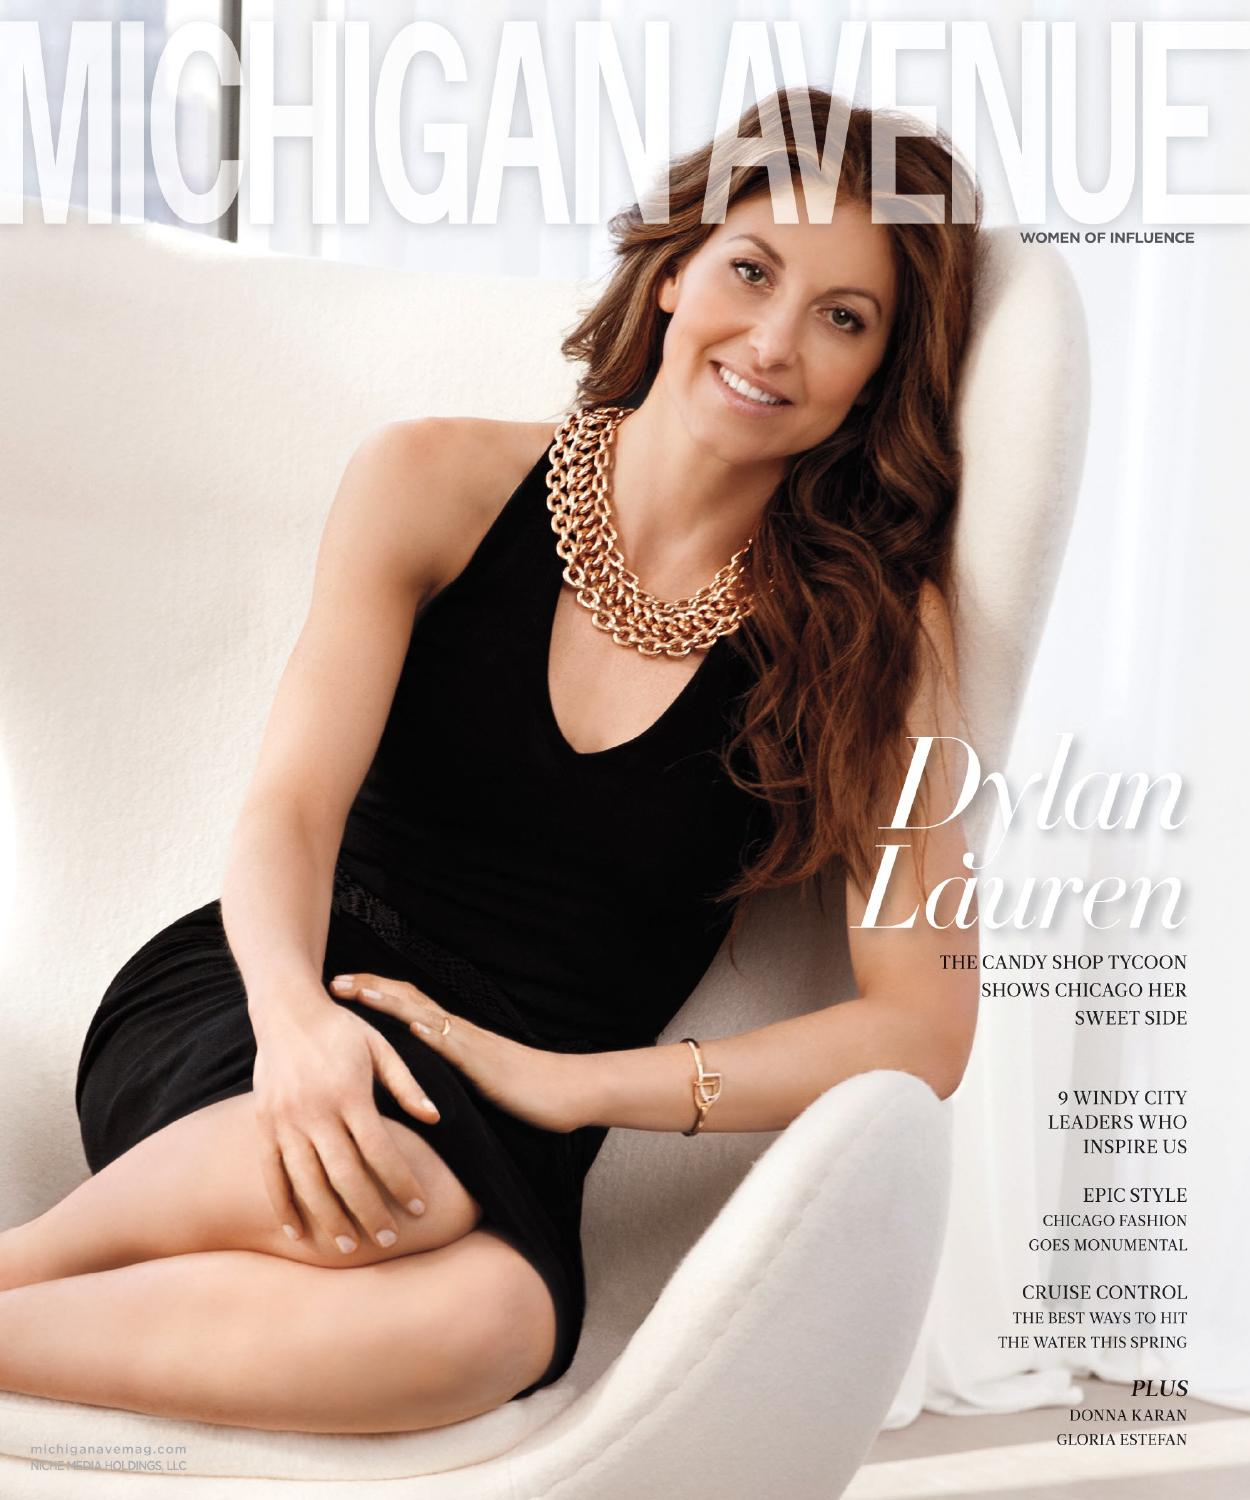 82bdc83085 Michigan Avenue - 2015 - Issue 3 - May-June - Dylan Lauren by Niche ...